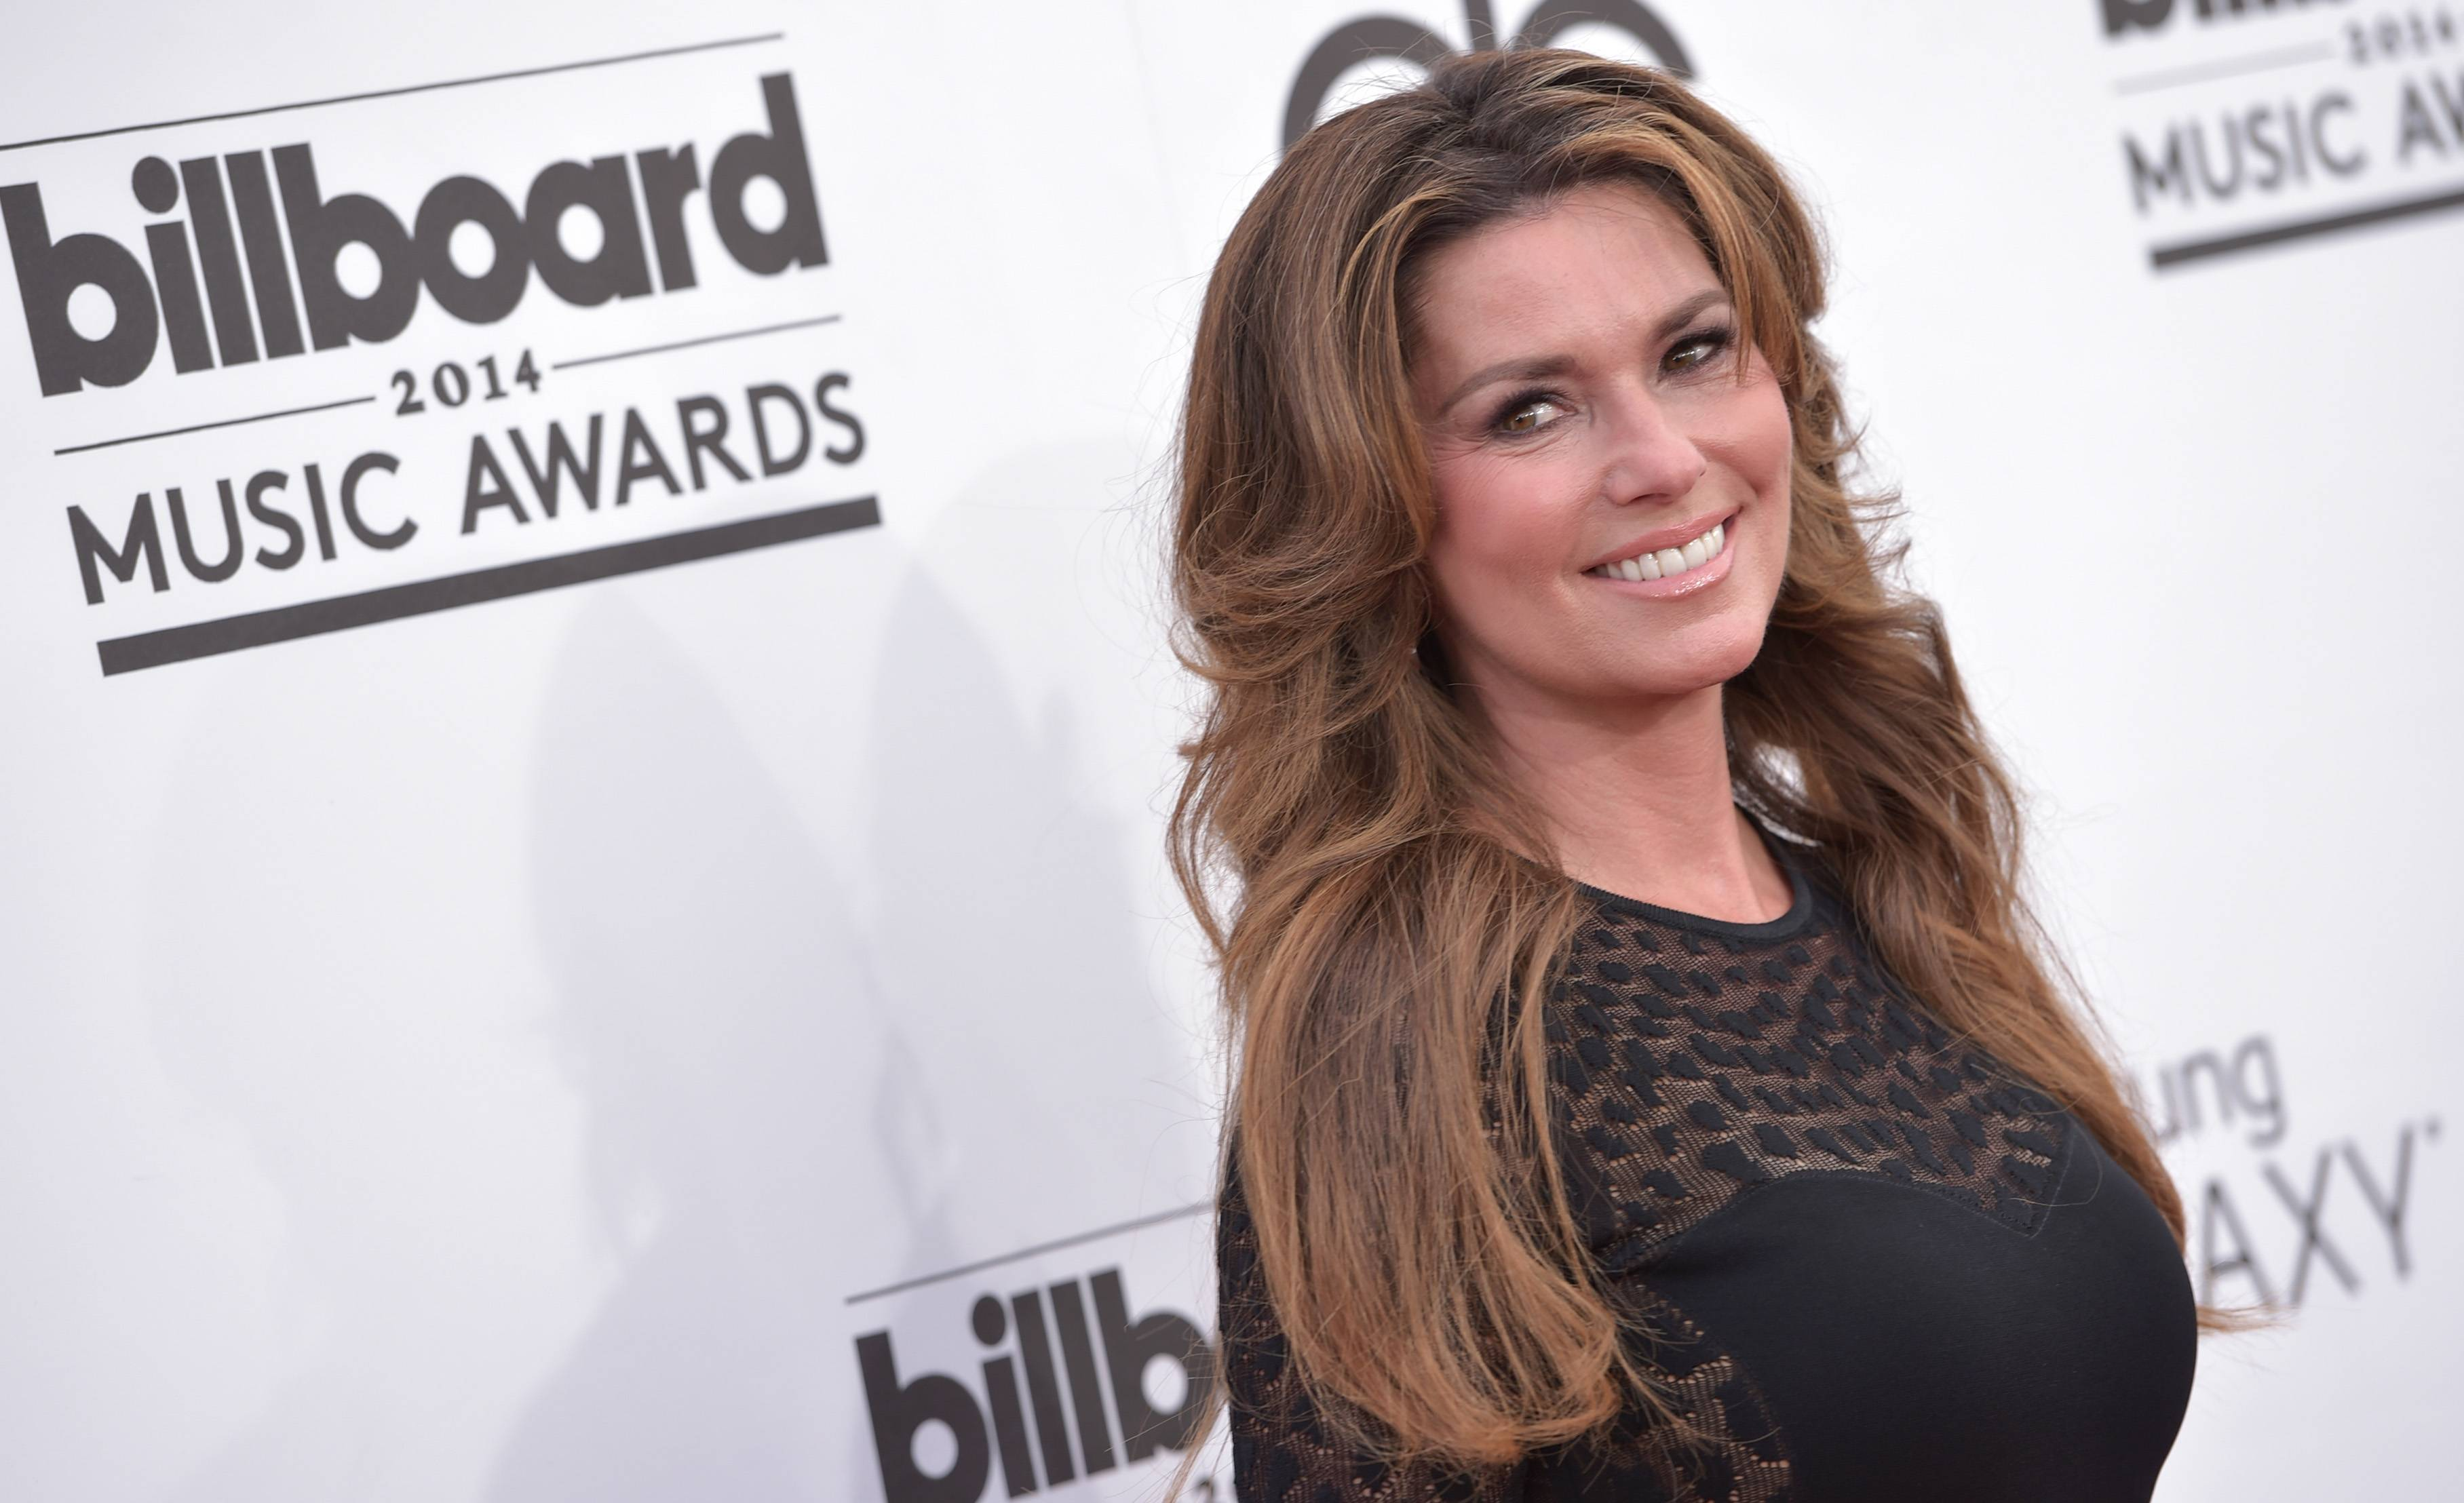 Shania Twain arrives at the Billboard Music Awards at the MGM Grand Garden Arena on Sunday, May 18, 2014, in Las Vegas.